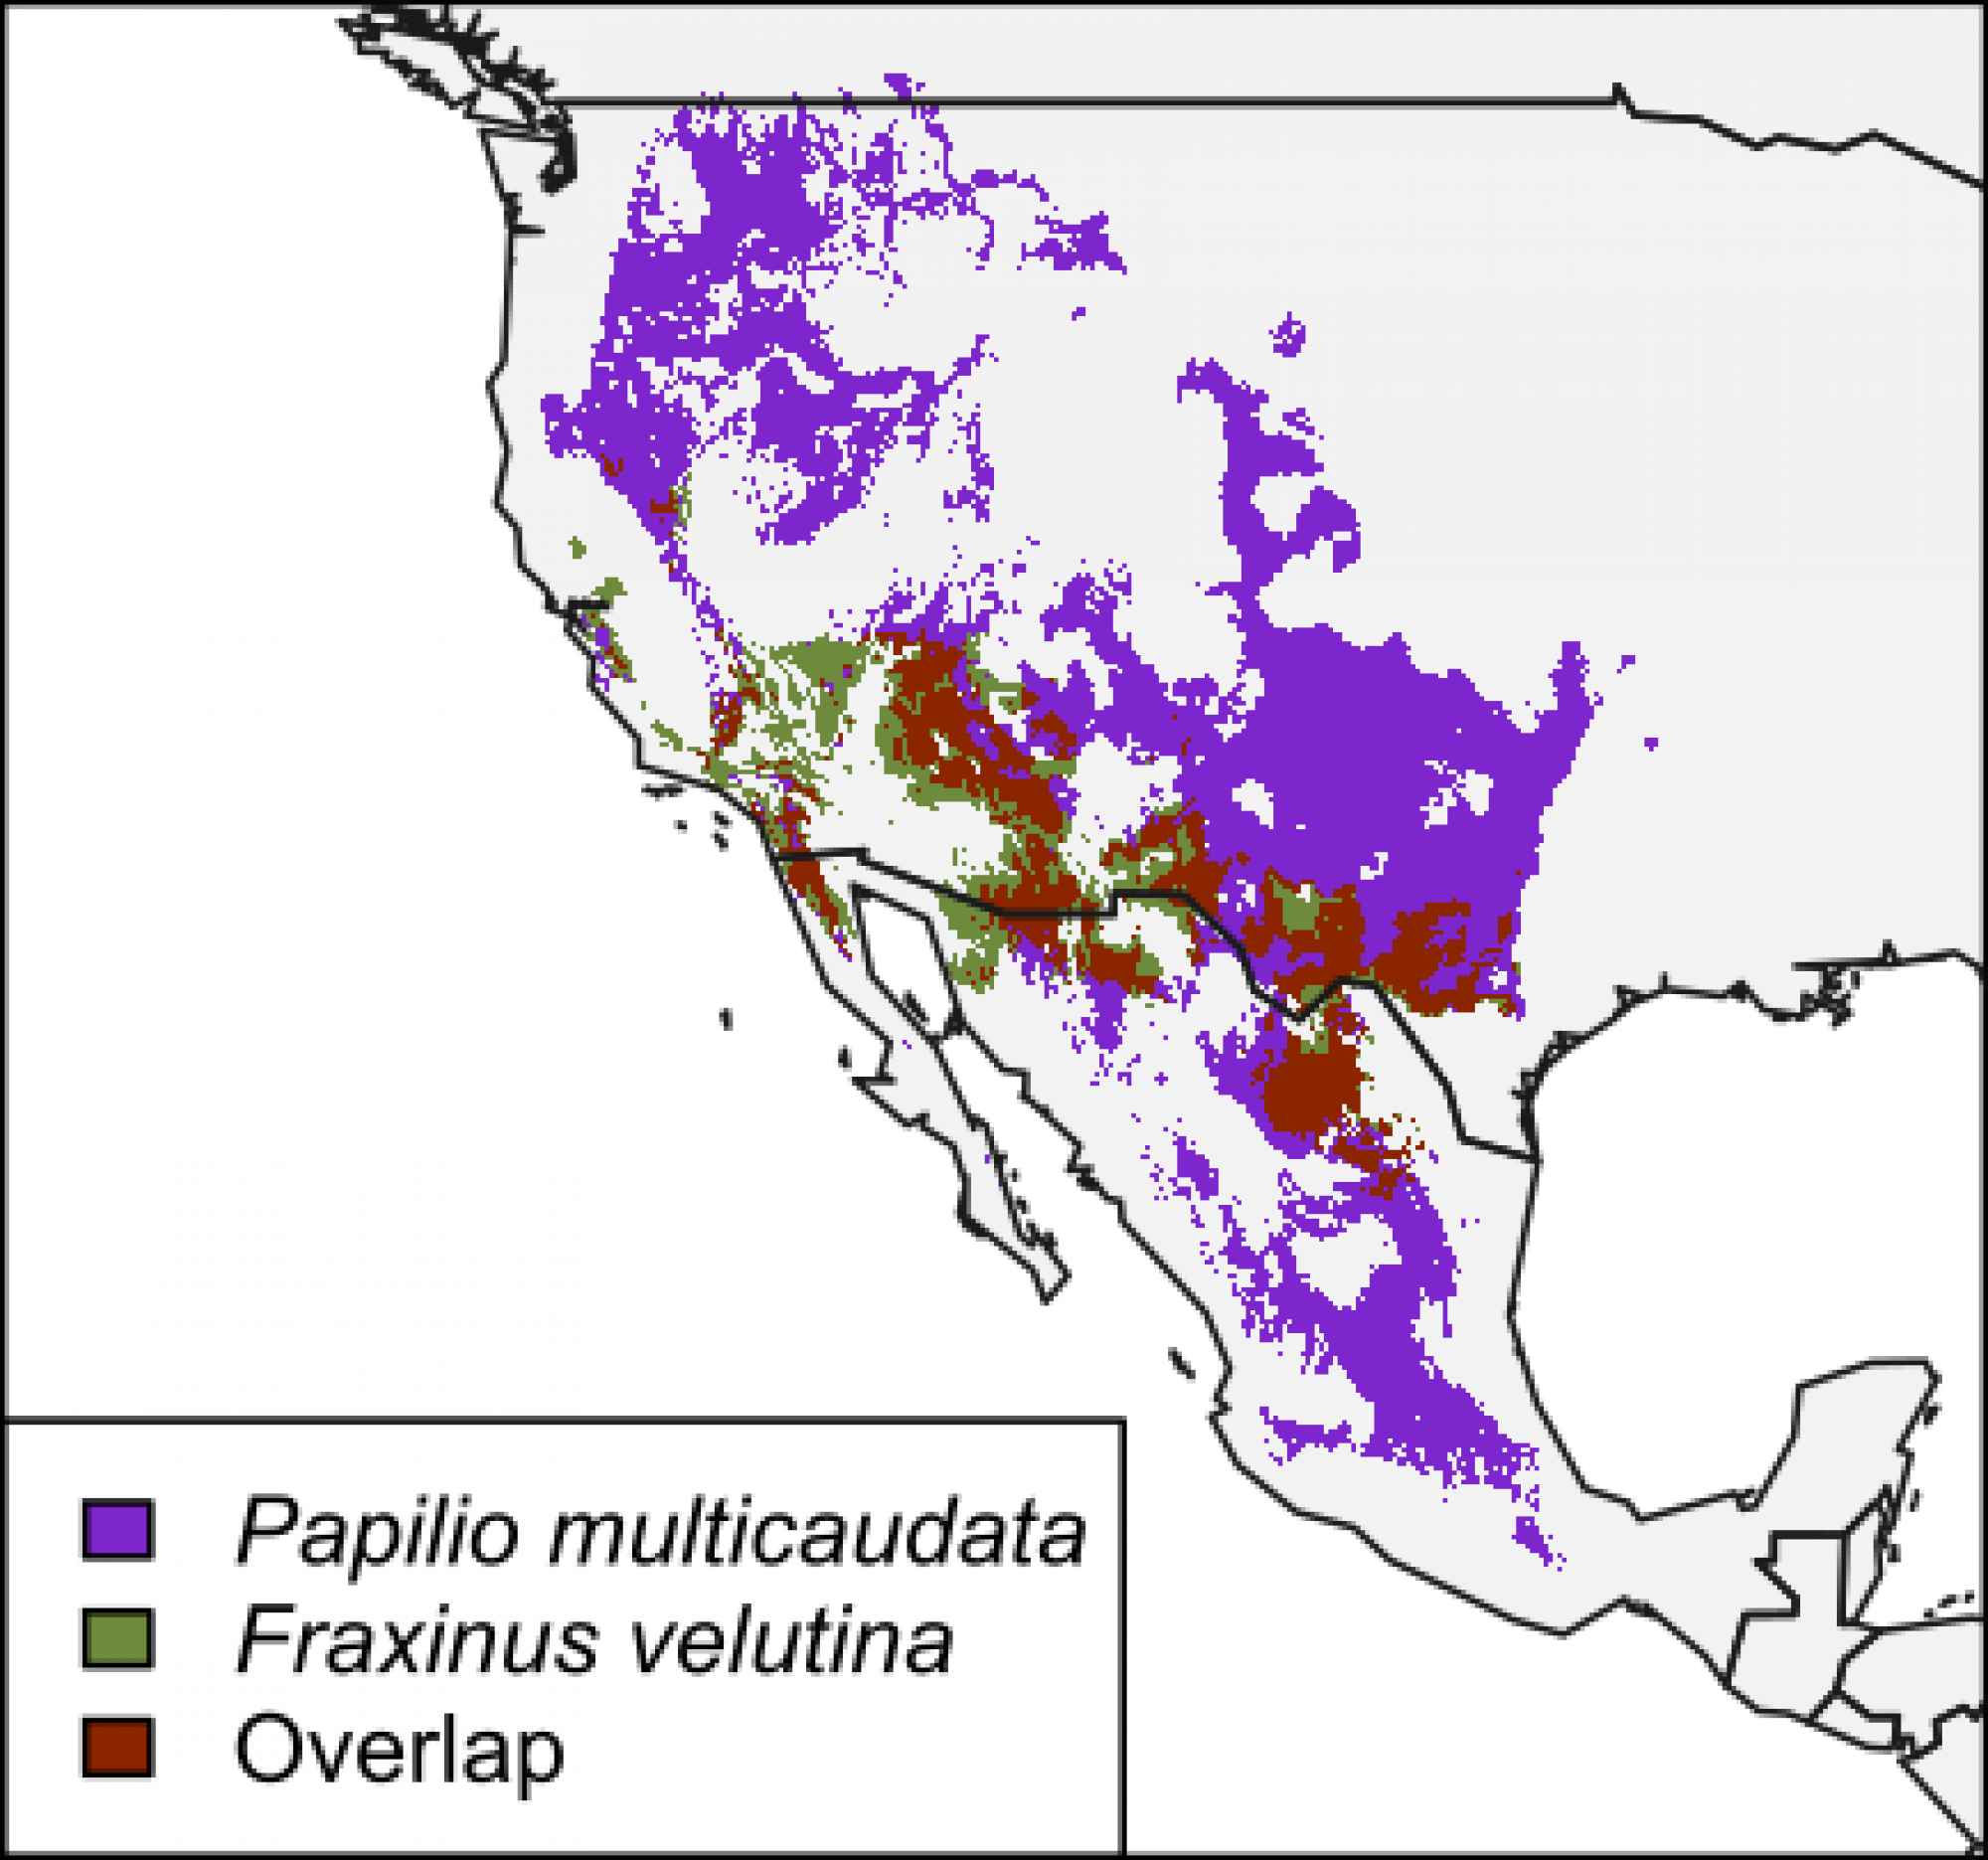 A map made by students showing the range of Arizona's state insect, the two-tailed swallowtail butterfly, and its host plant, velvet ash. The butterfly's range is shown in purple, the plant's range is shown in green, and the overlap of the two ranges is s